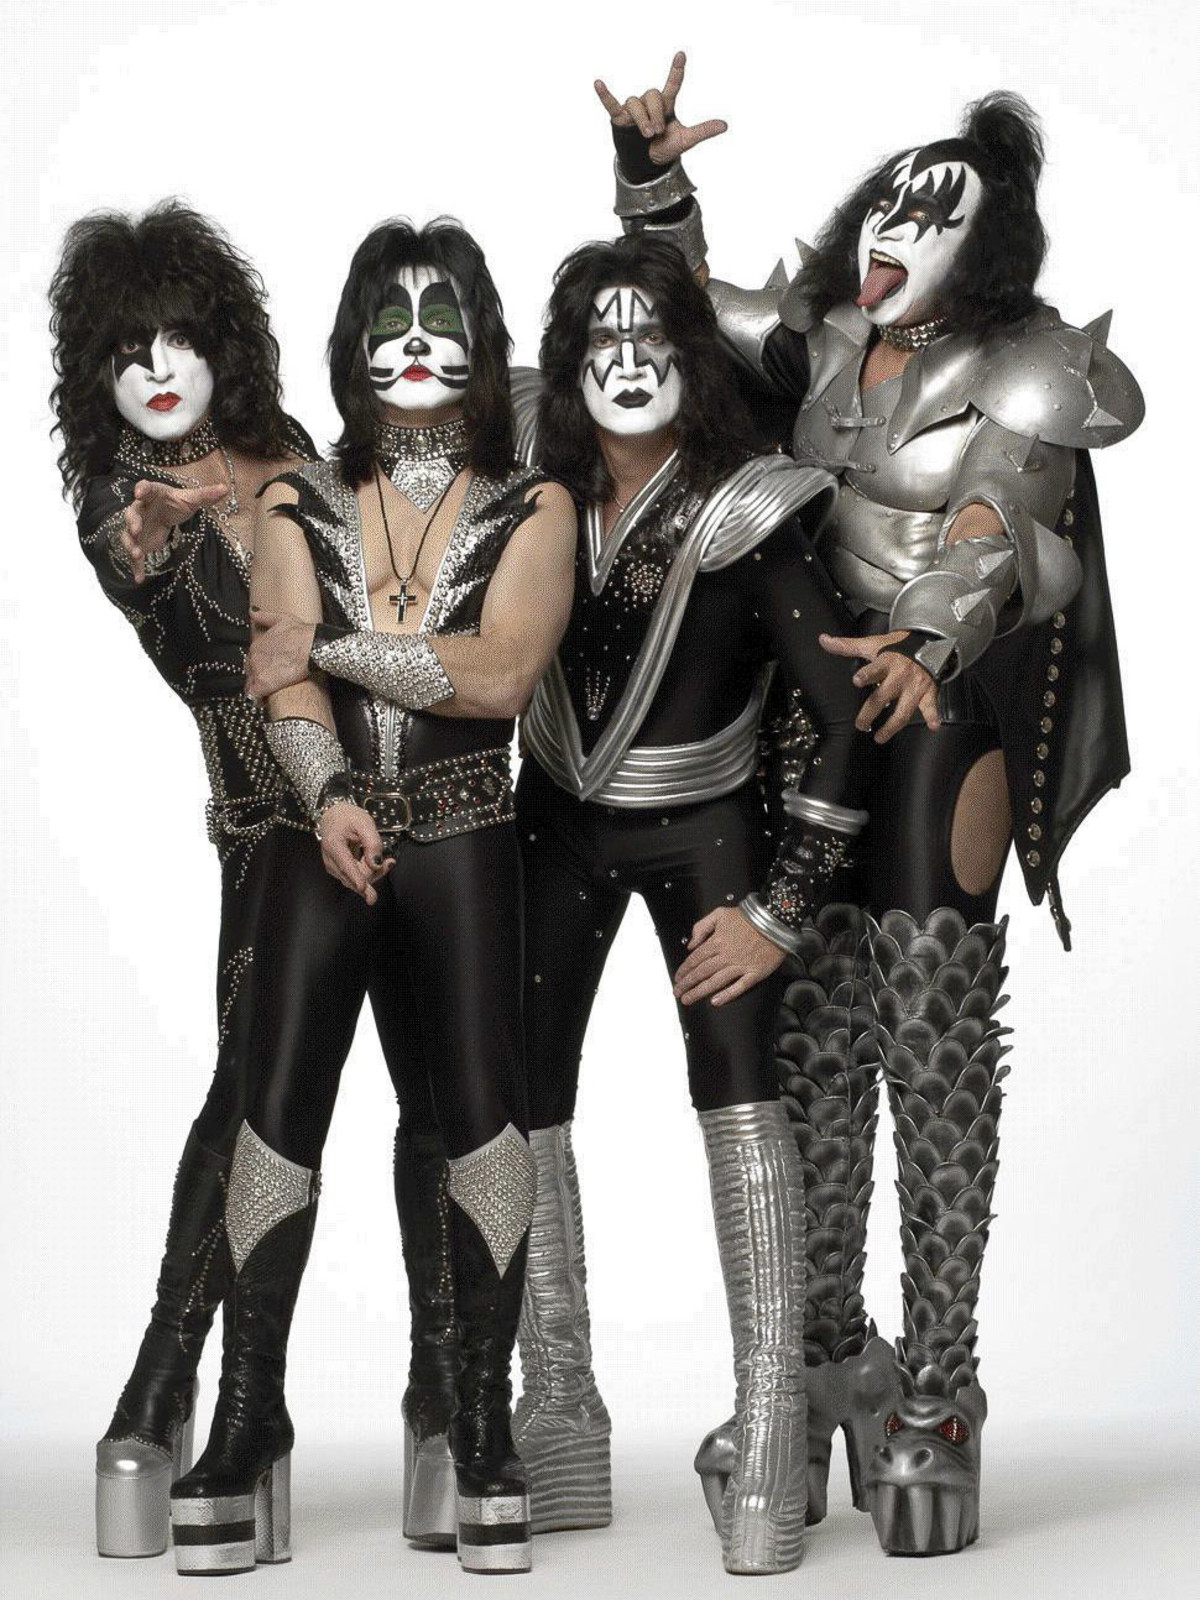 KISS still pulls groupies, proving that scary makeup is the key to ... - CultureMap Houston